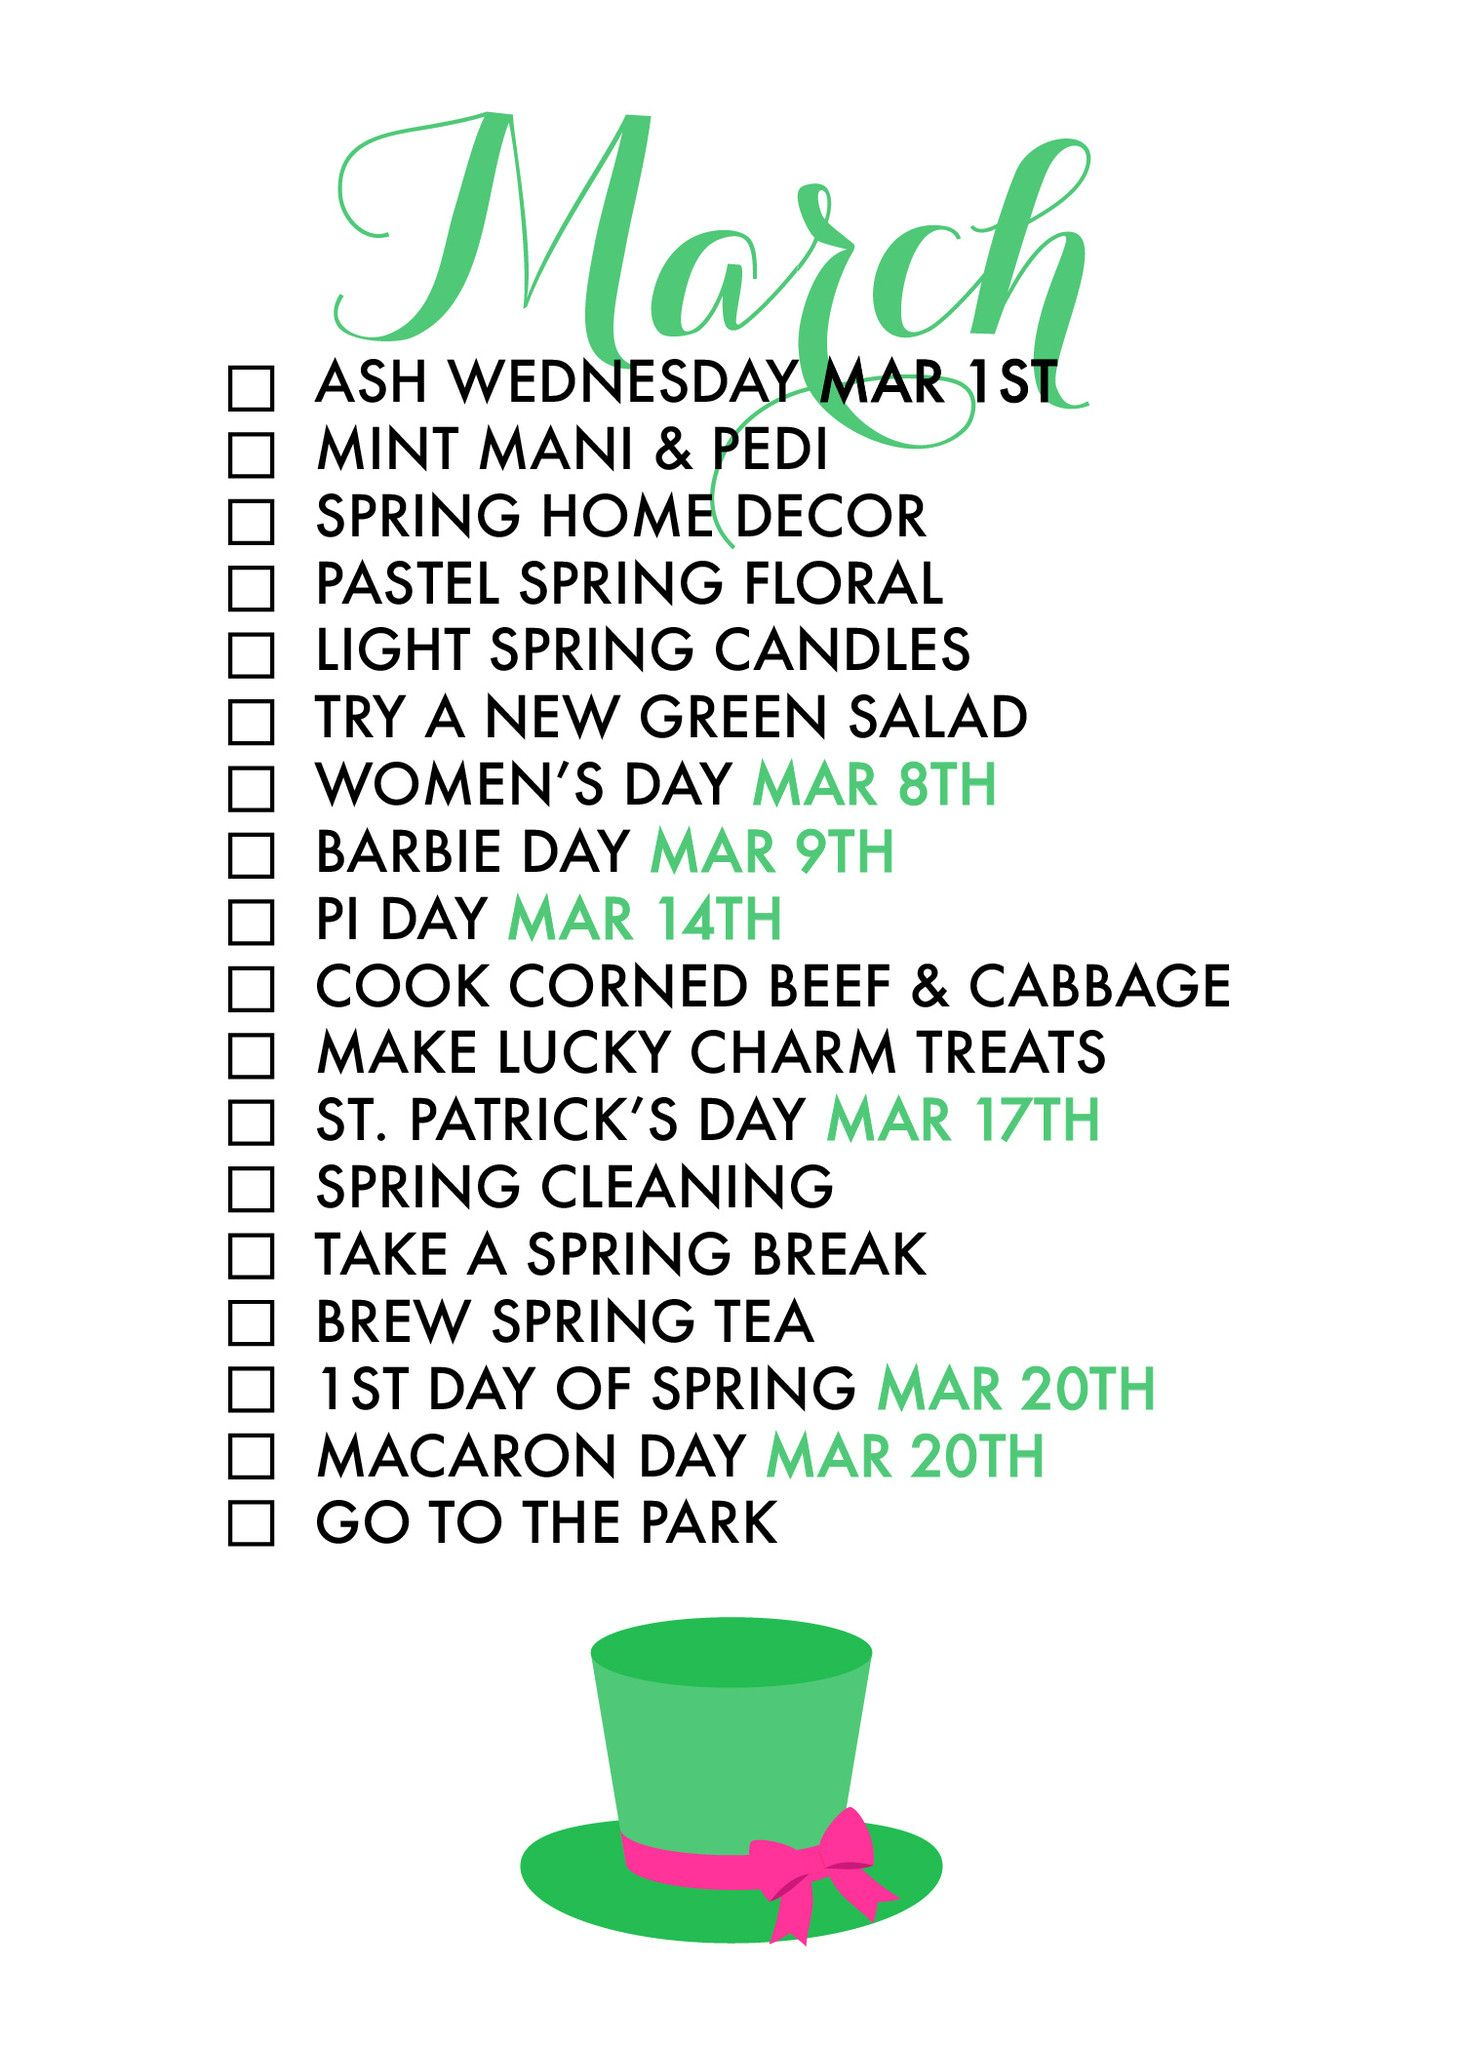 18 Reasons To Celebrate March! Amonthly life list helps uscelebrateeach seasonof the year and findjoyin every day!